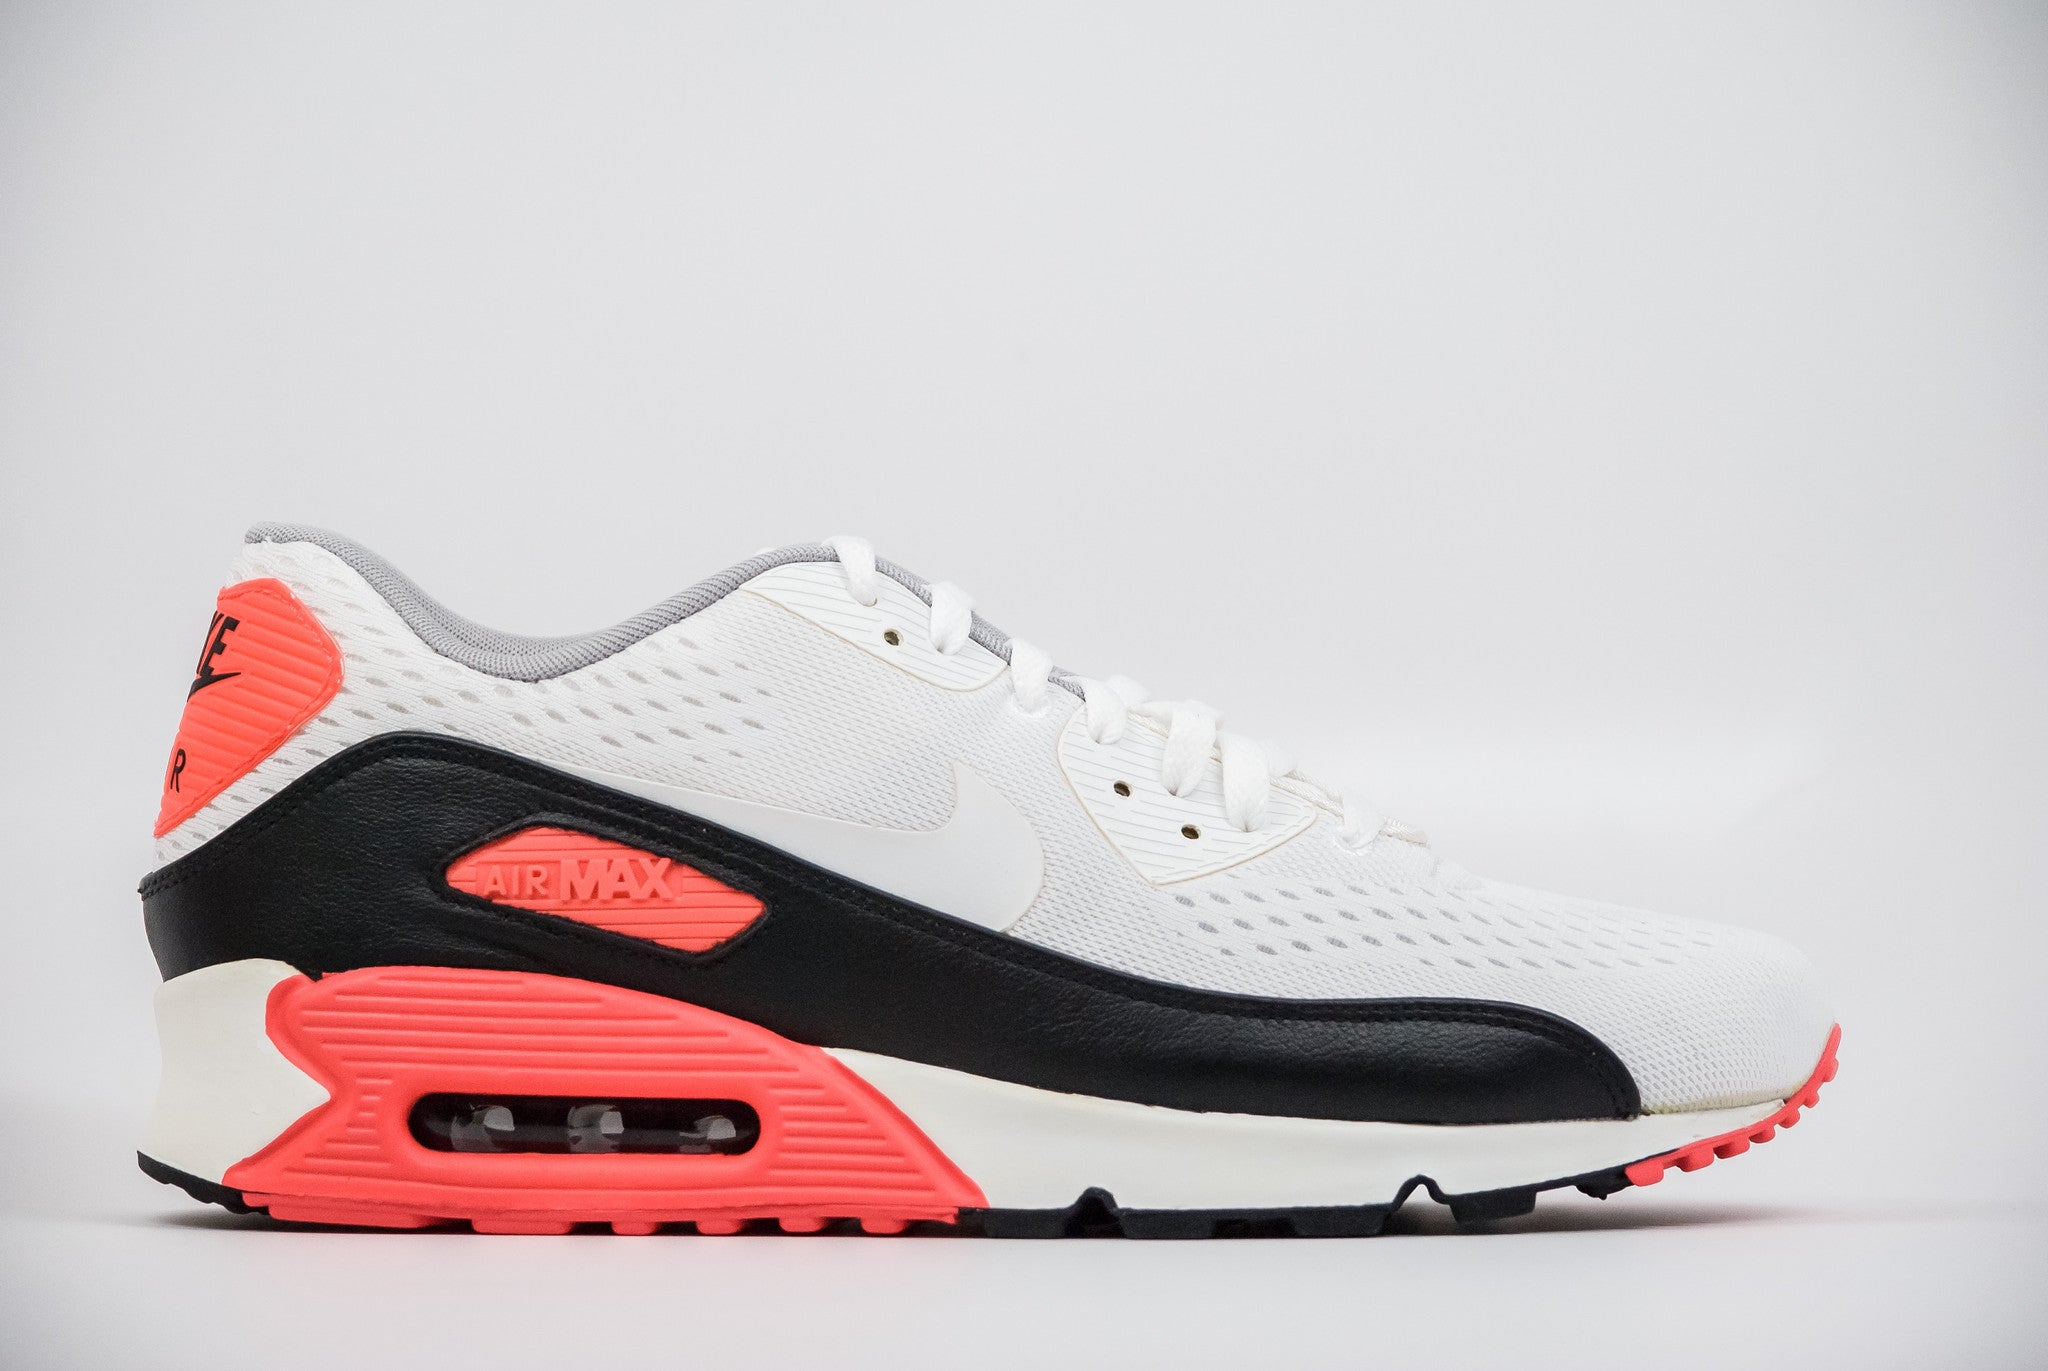 brand new f7095 97af6 NIKE AIR MAX 90 EM INFRARED - PREOWNED